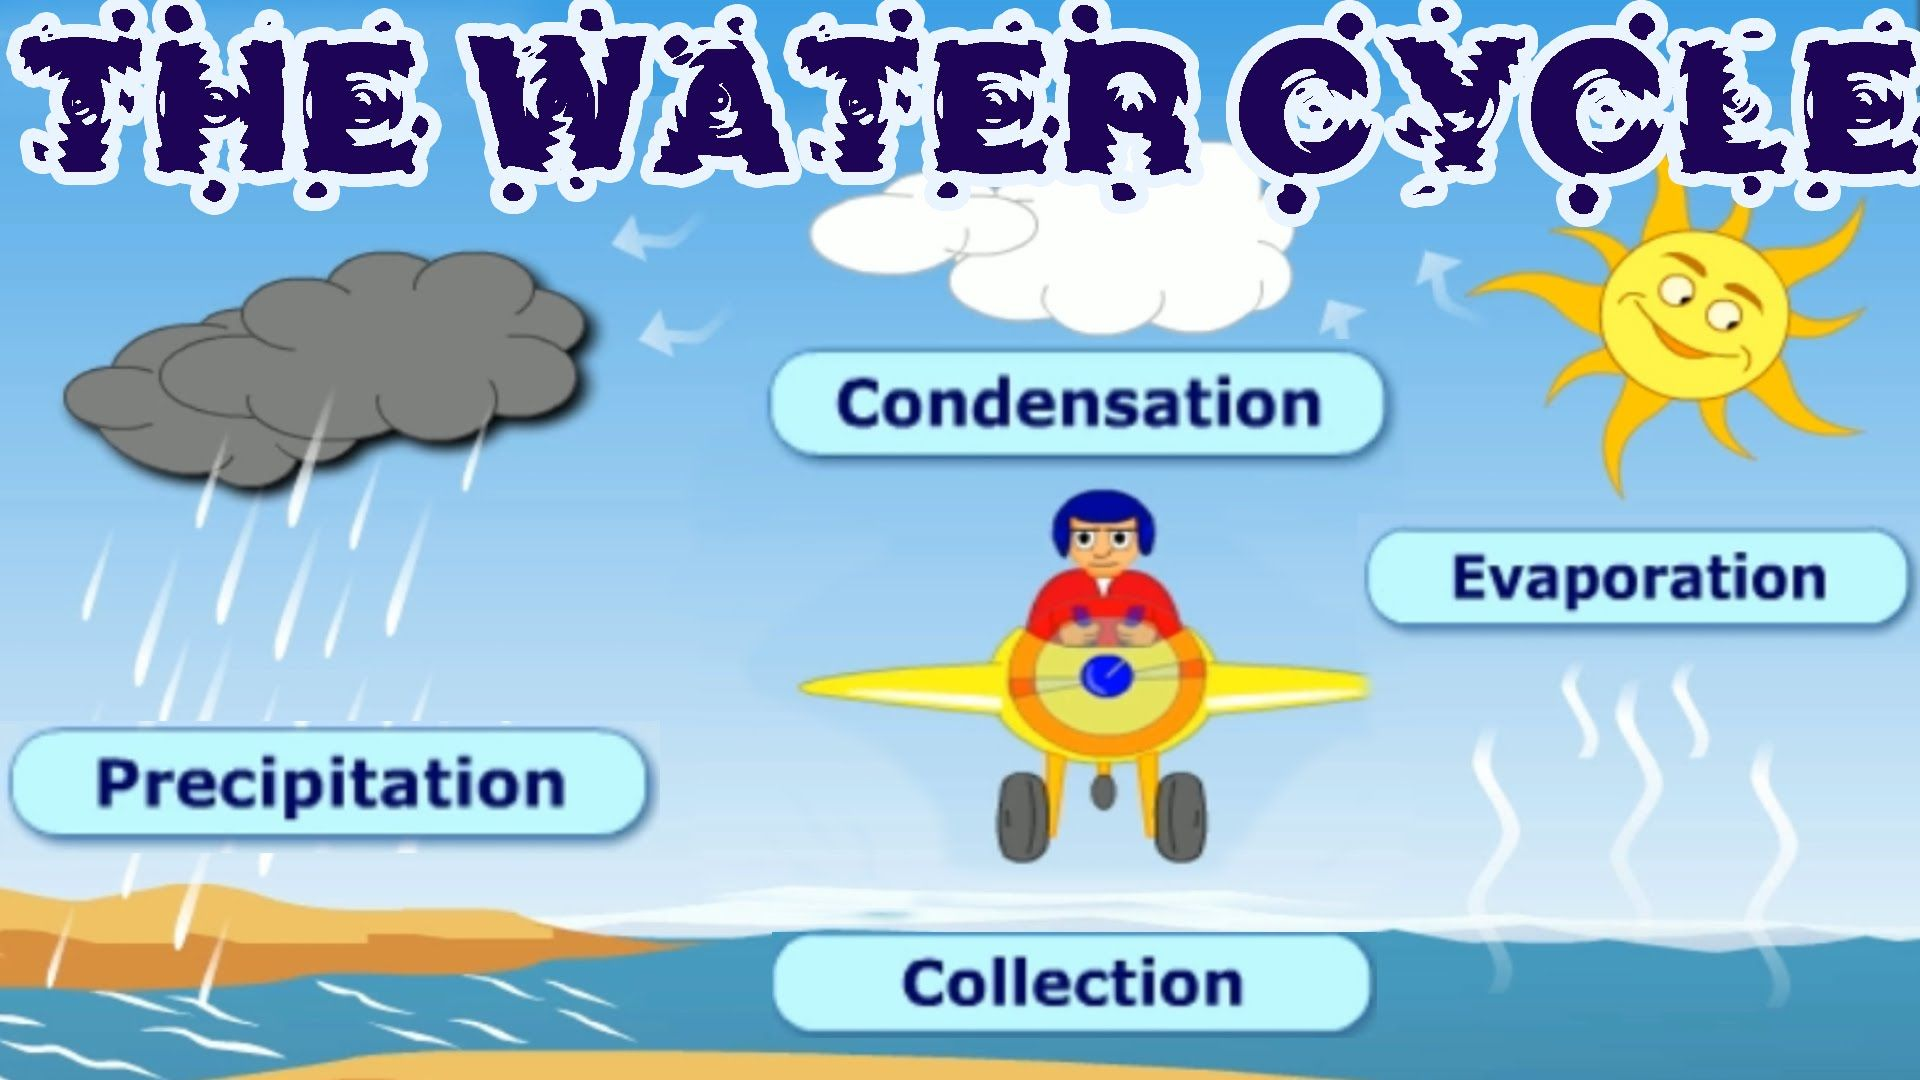 Worksheets Speech In Watercycl gr 2 5 the water cycle collection condensation precipitation evaporation